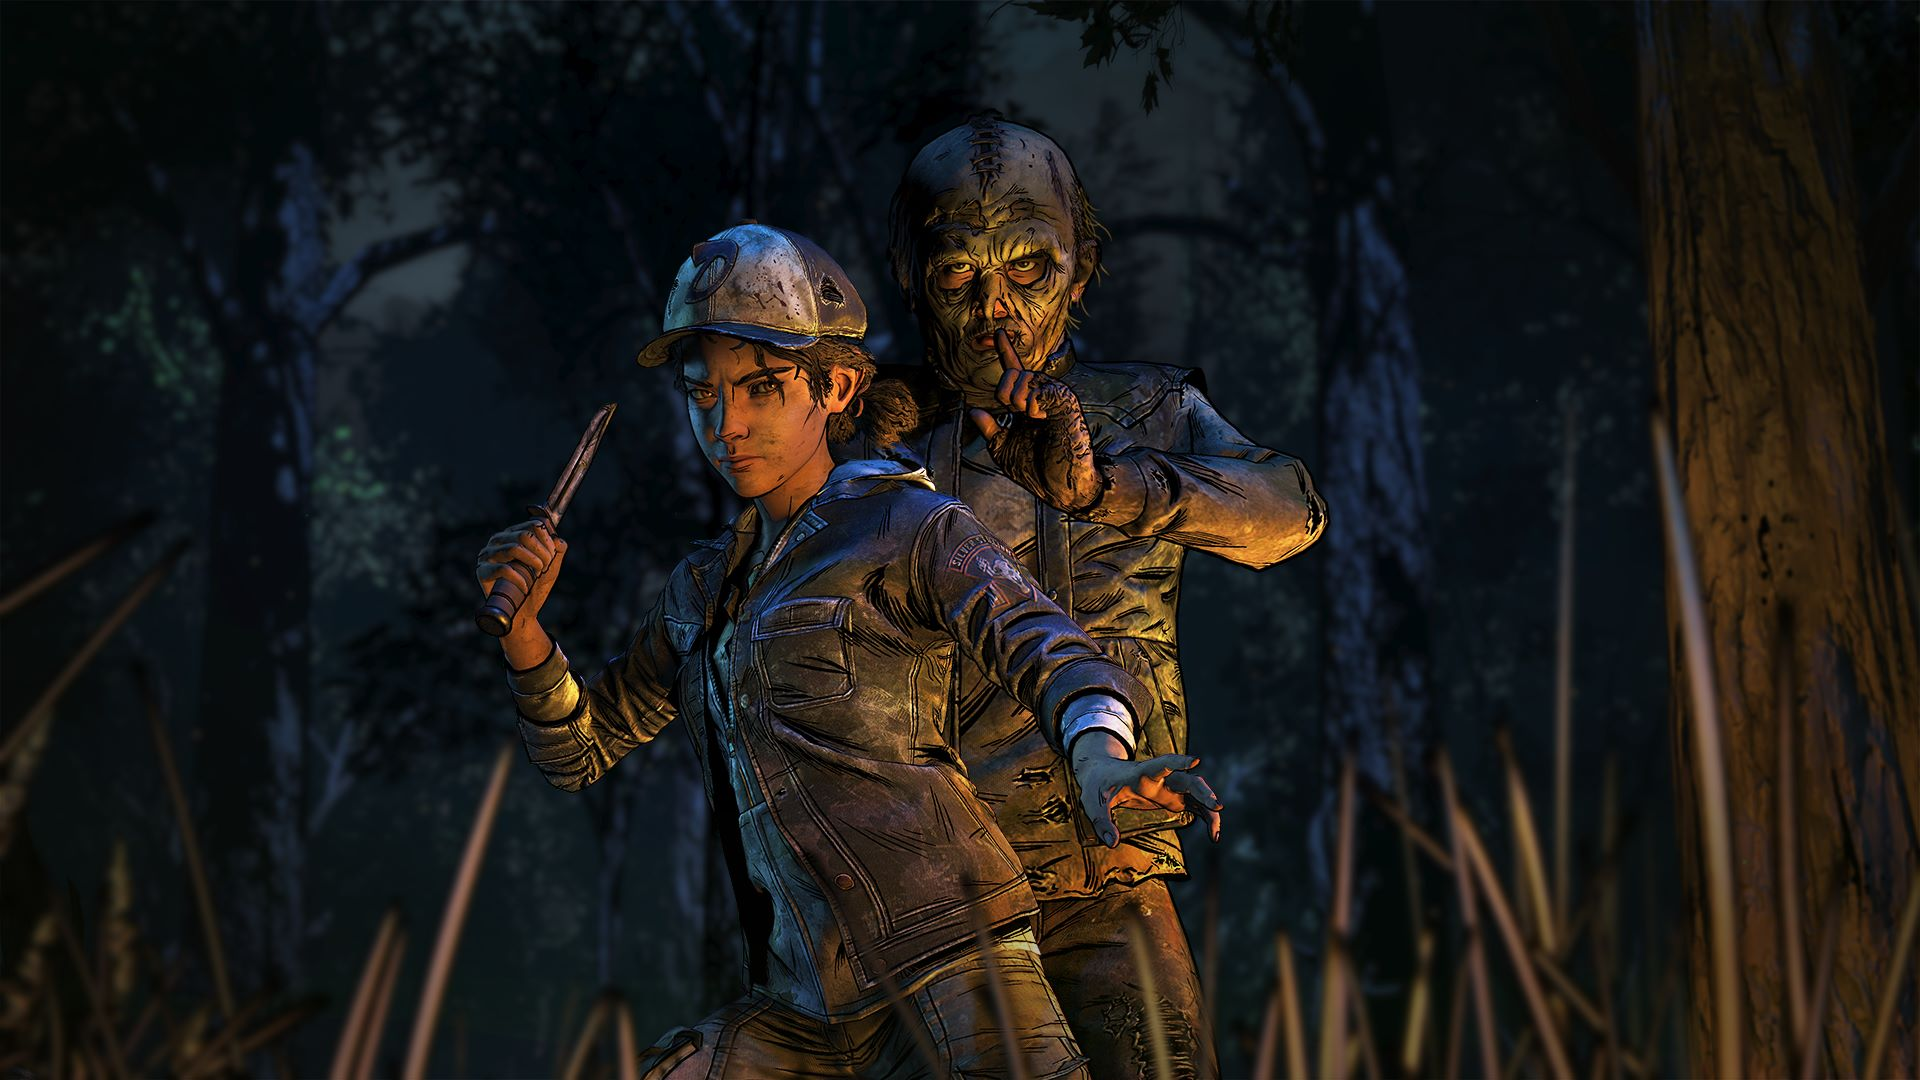 The Walking Dead: The Final Season - episode two is out today